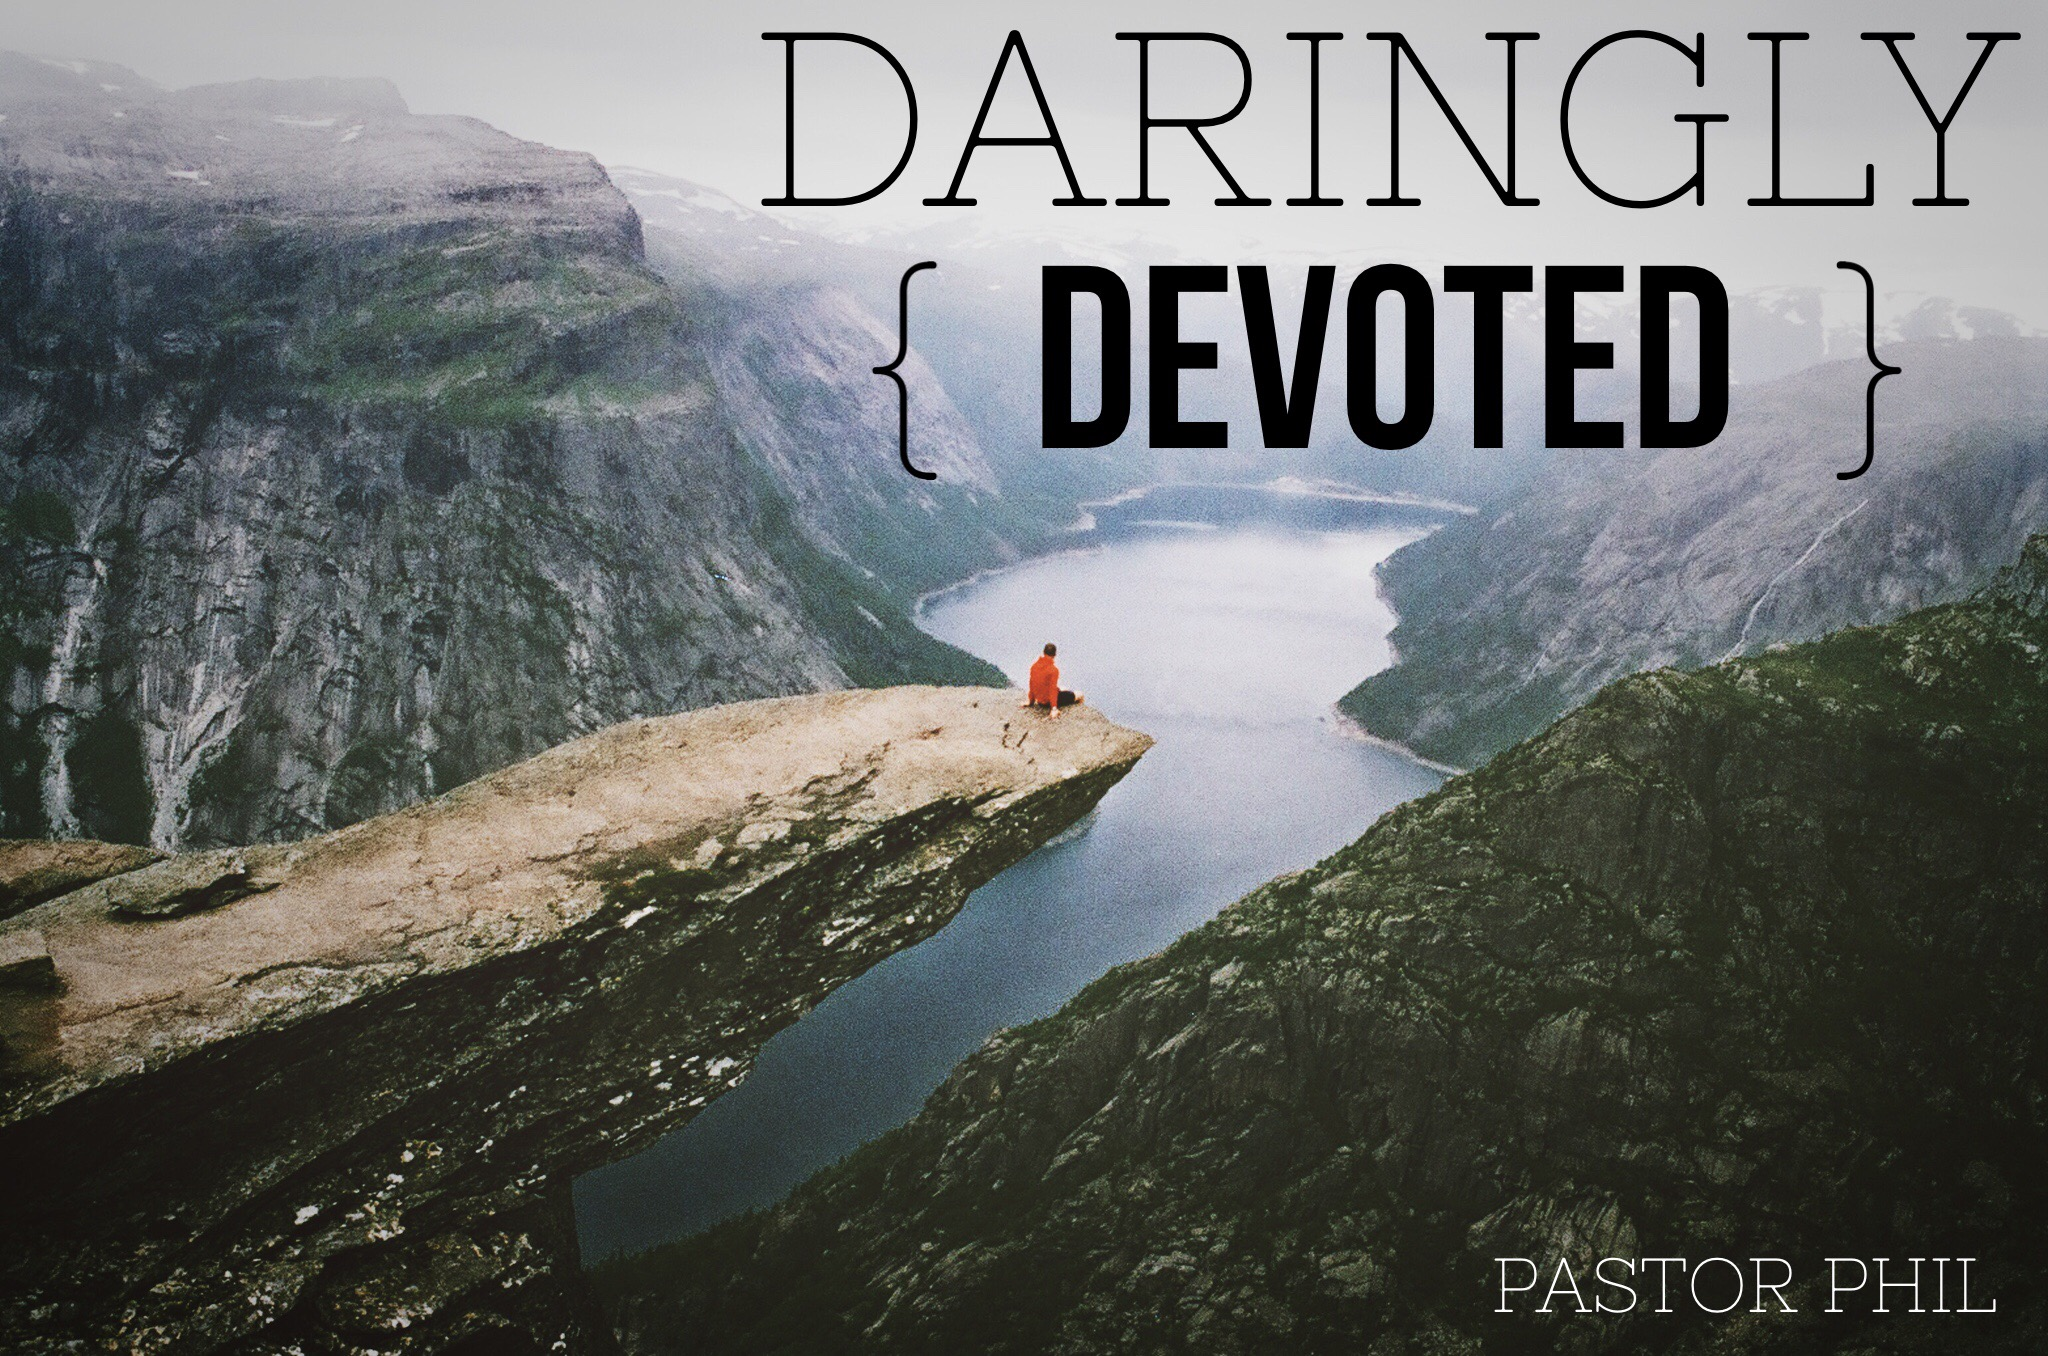 Daringly Devoted Pt. 2